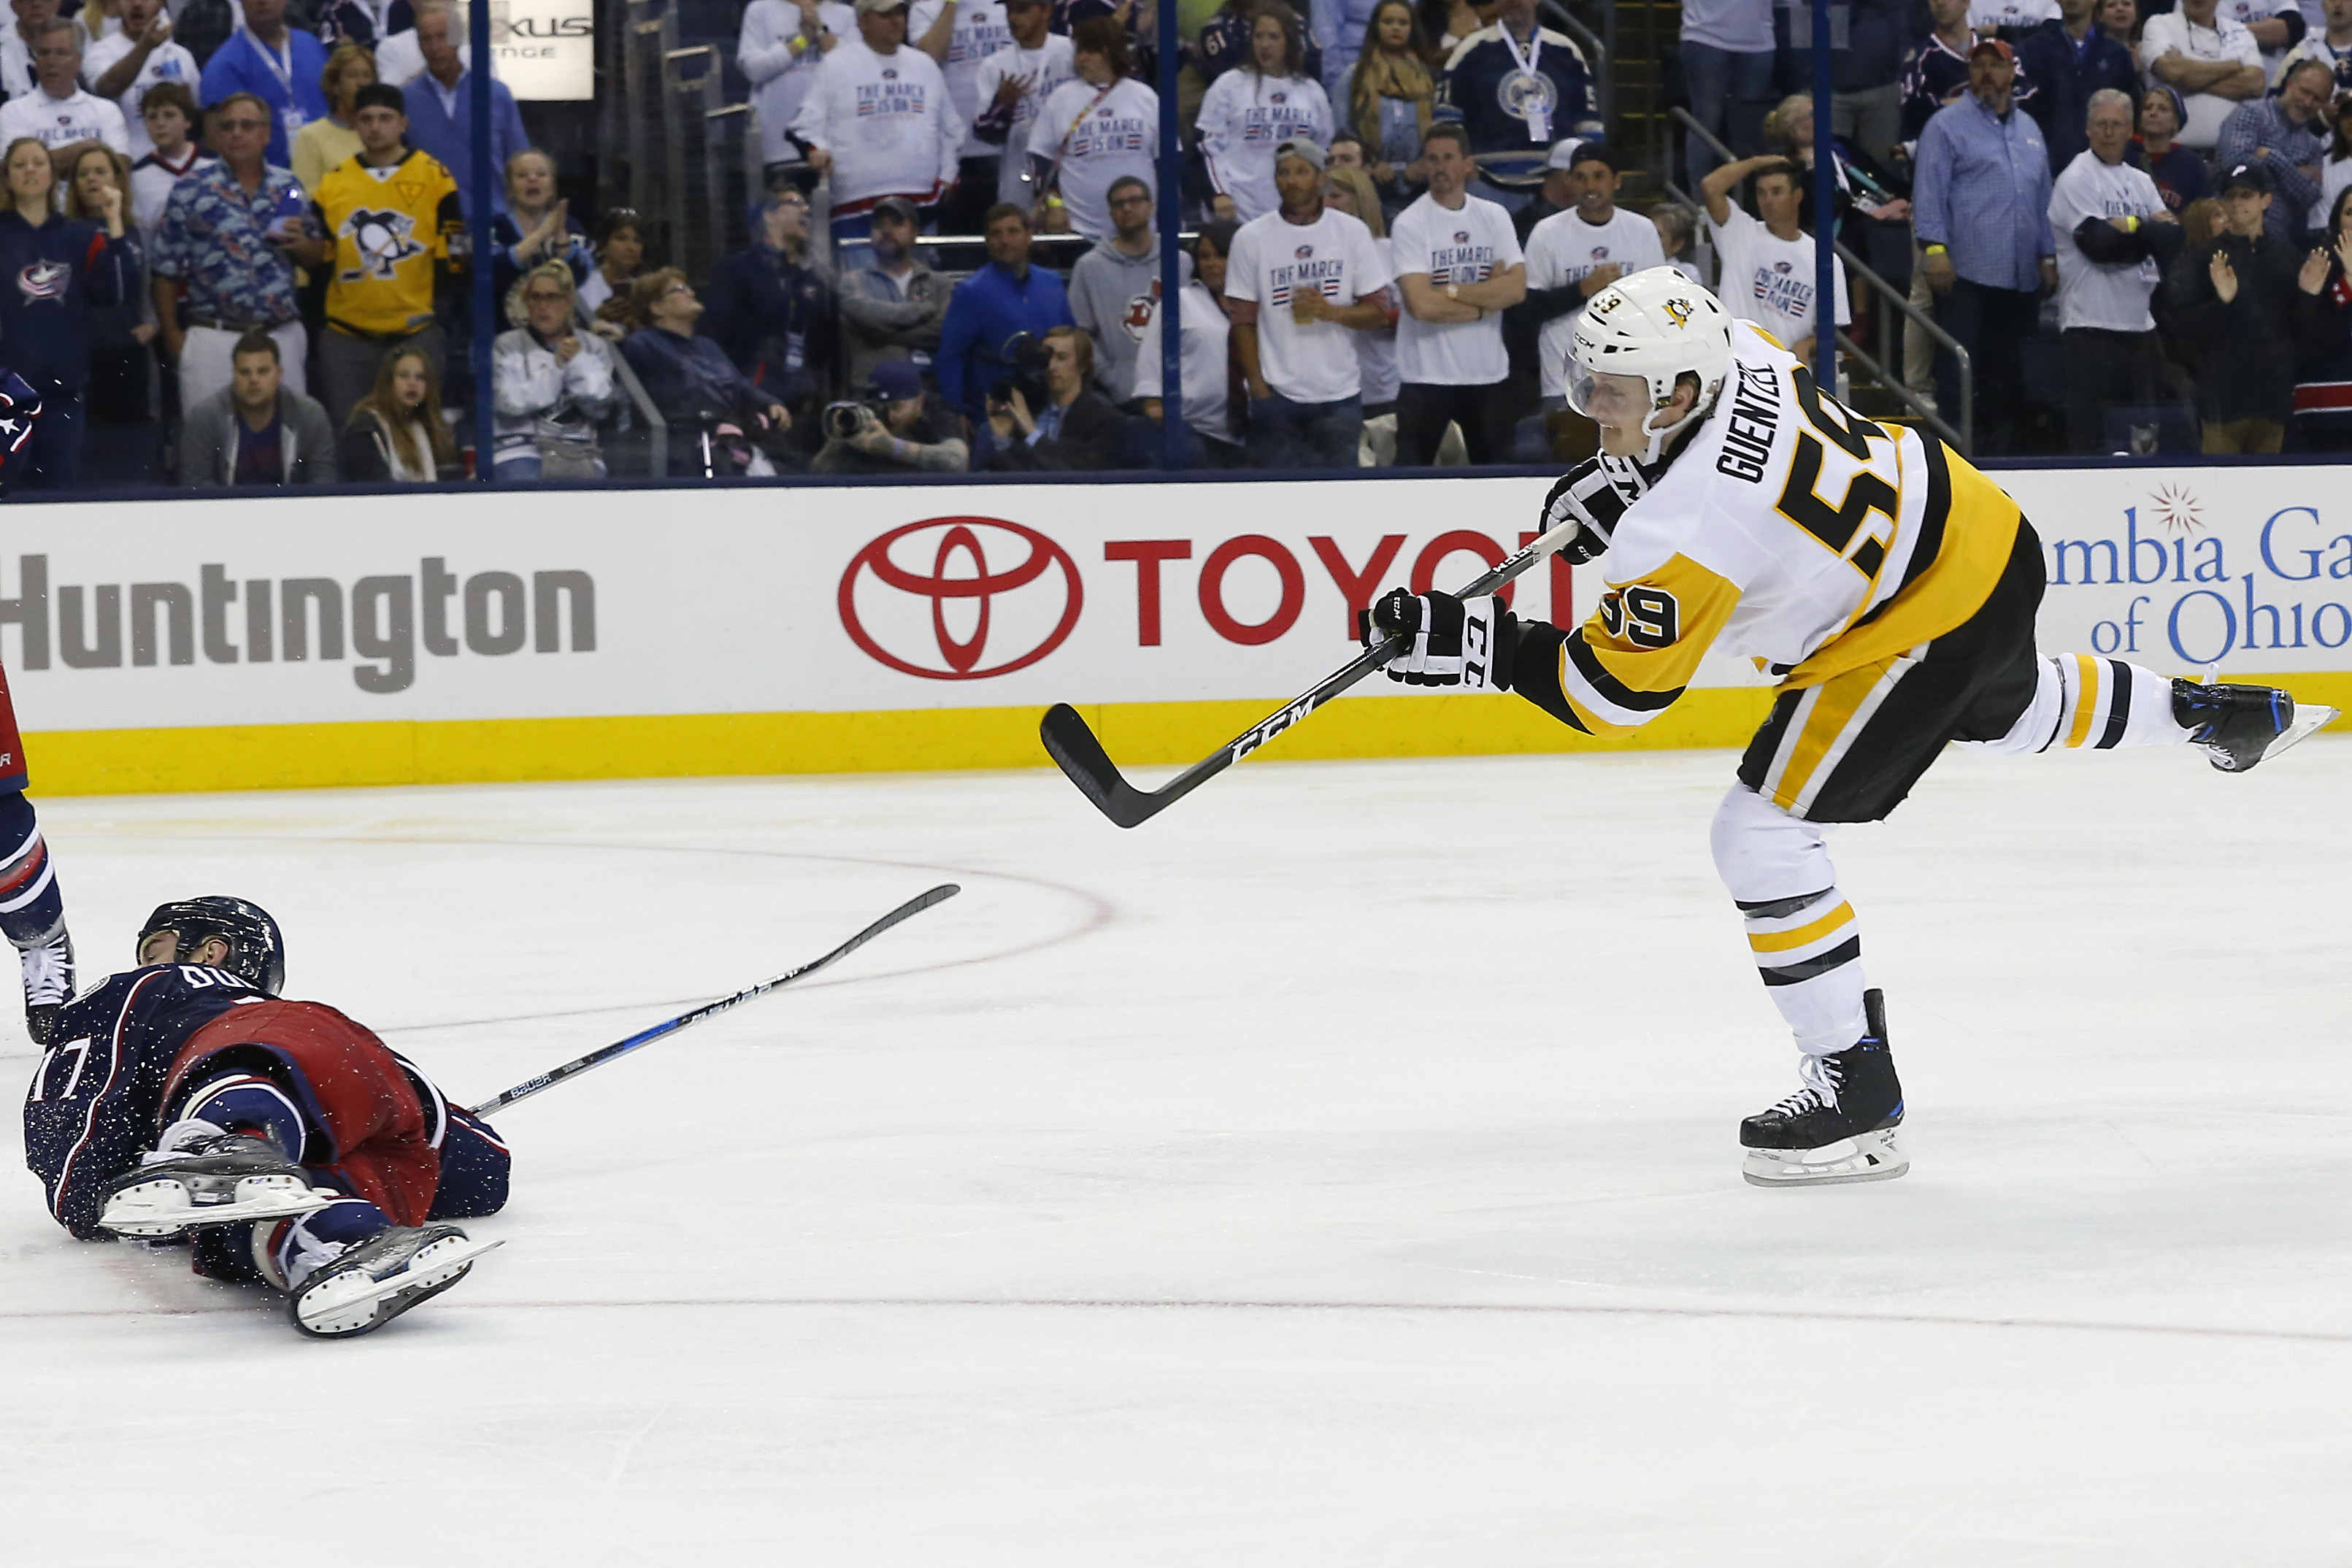 10016845-nhl-stanley-cup-playoffs-pittsburgh-penguins-at-columbus-blue-jackets